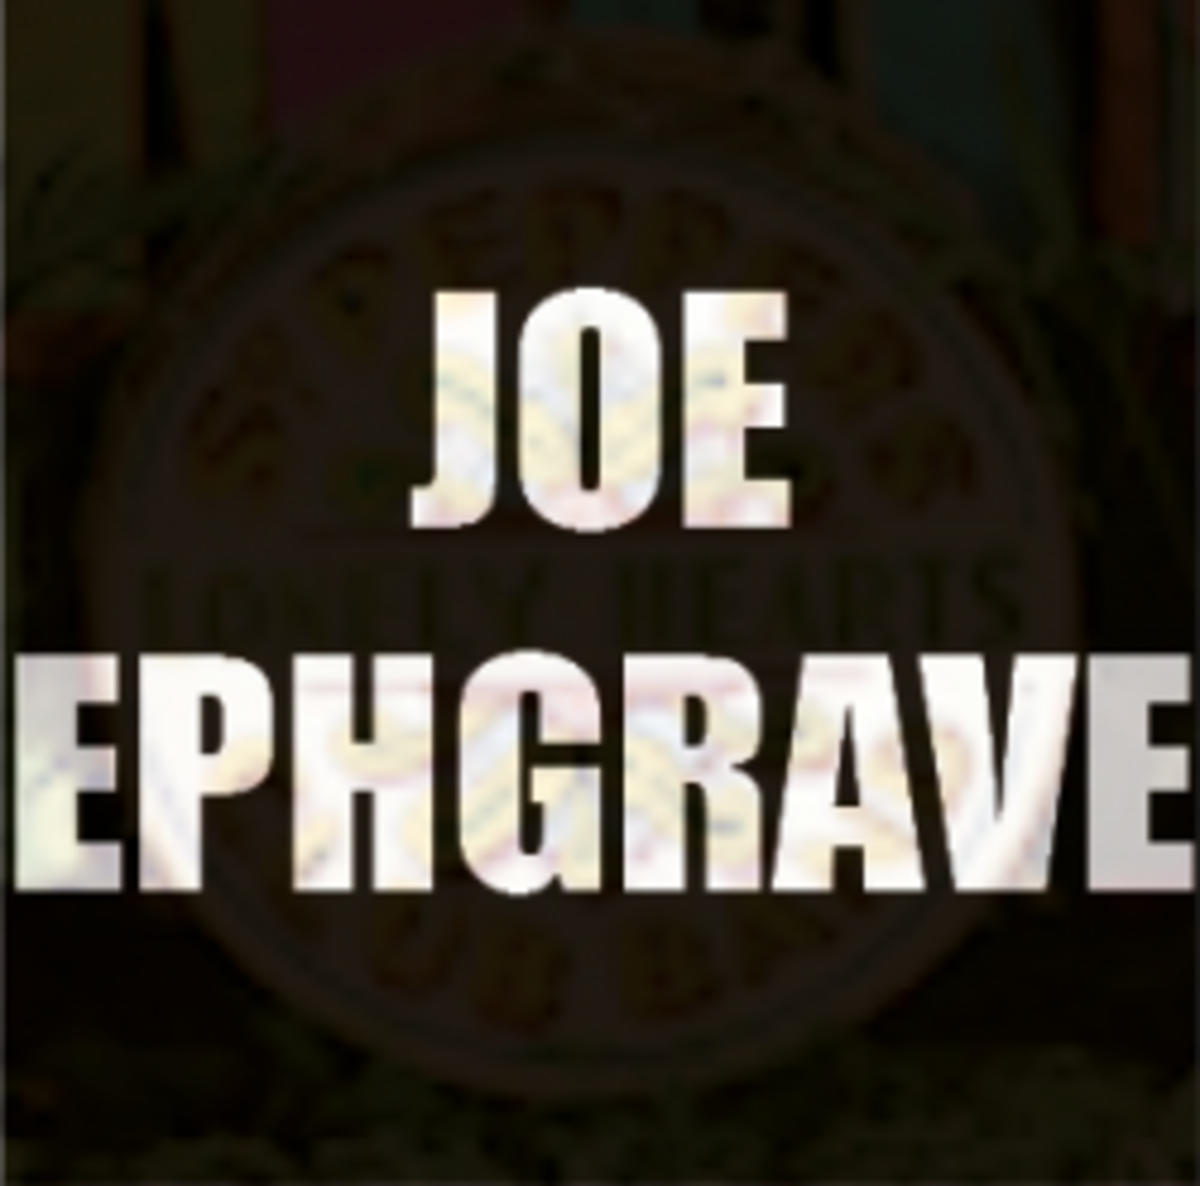 Who was Joe Ephgrave?